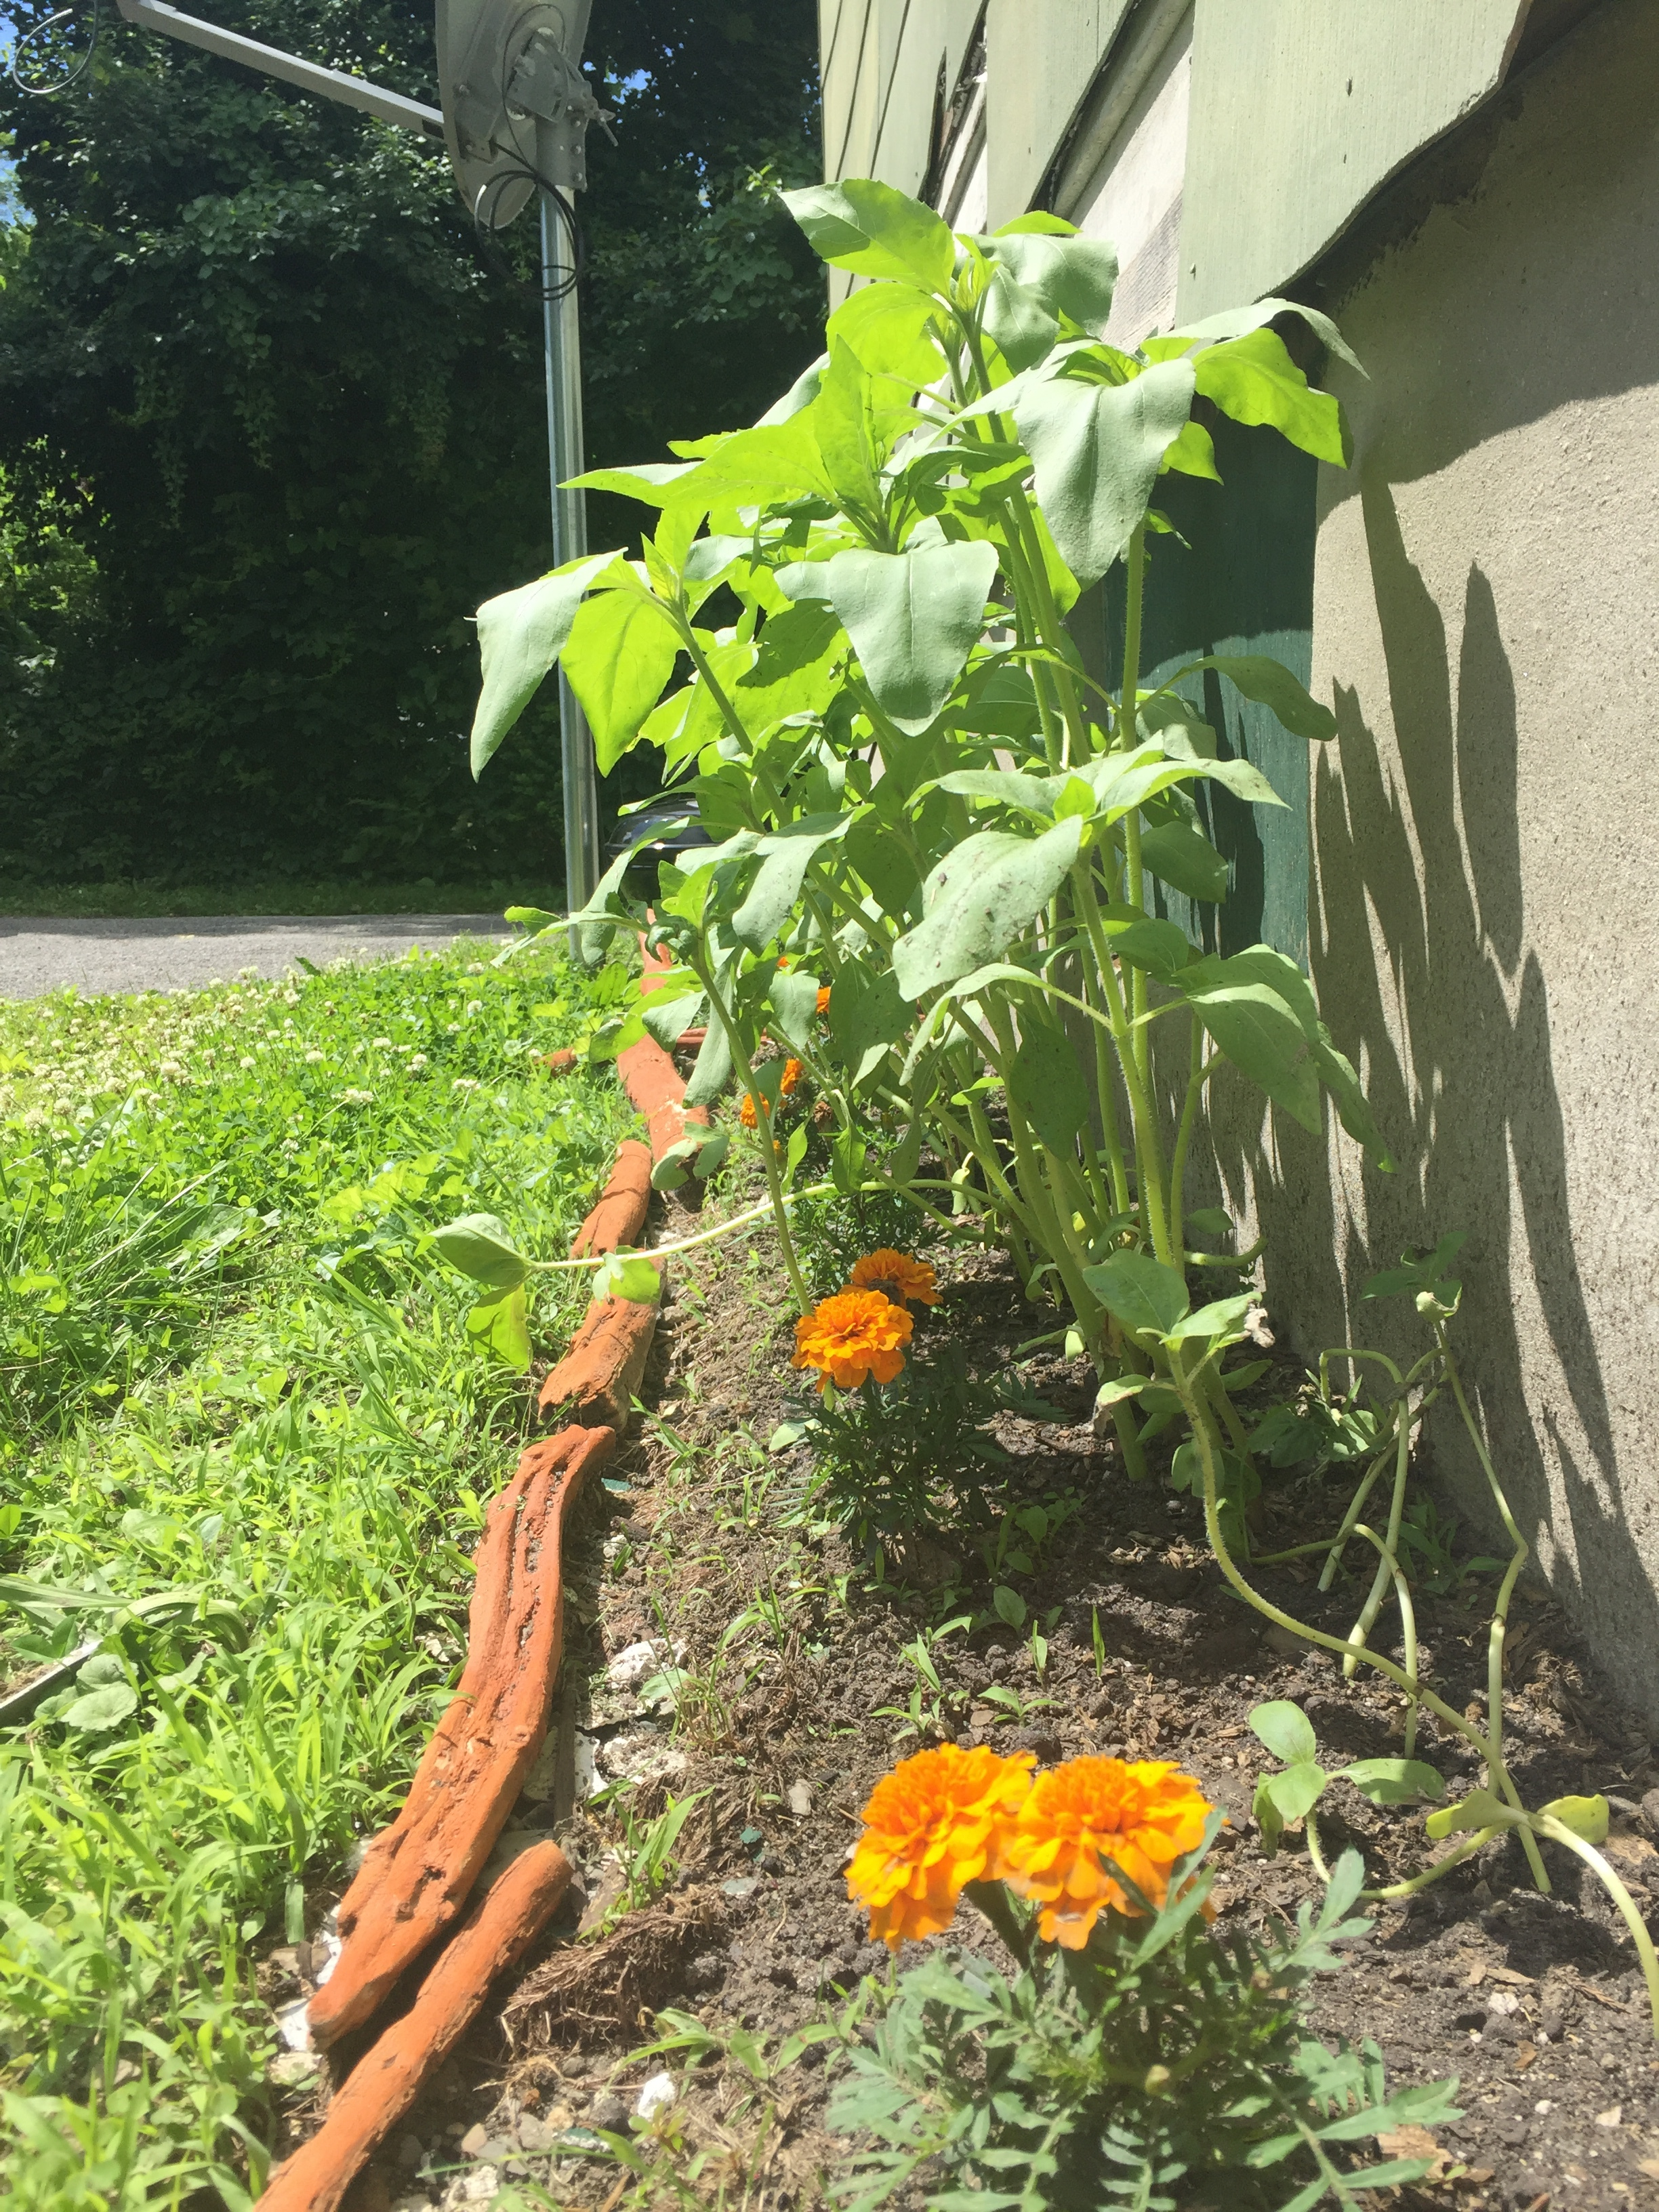 Did they recover? Ya can bet your green...whatever...I am thinning them every so often but every time I have to remove a plant, it pains my plant-loving heart...My valiant sunflowers be committed to owning their space and ruling their garden. The marigolds? Their humble guardians! My sunflowers be killin' it, son...They grow in NY so this is how we must talk about them...OF COURSE!